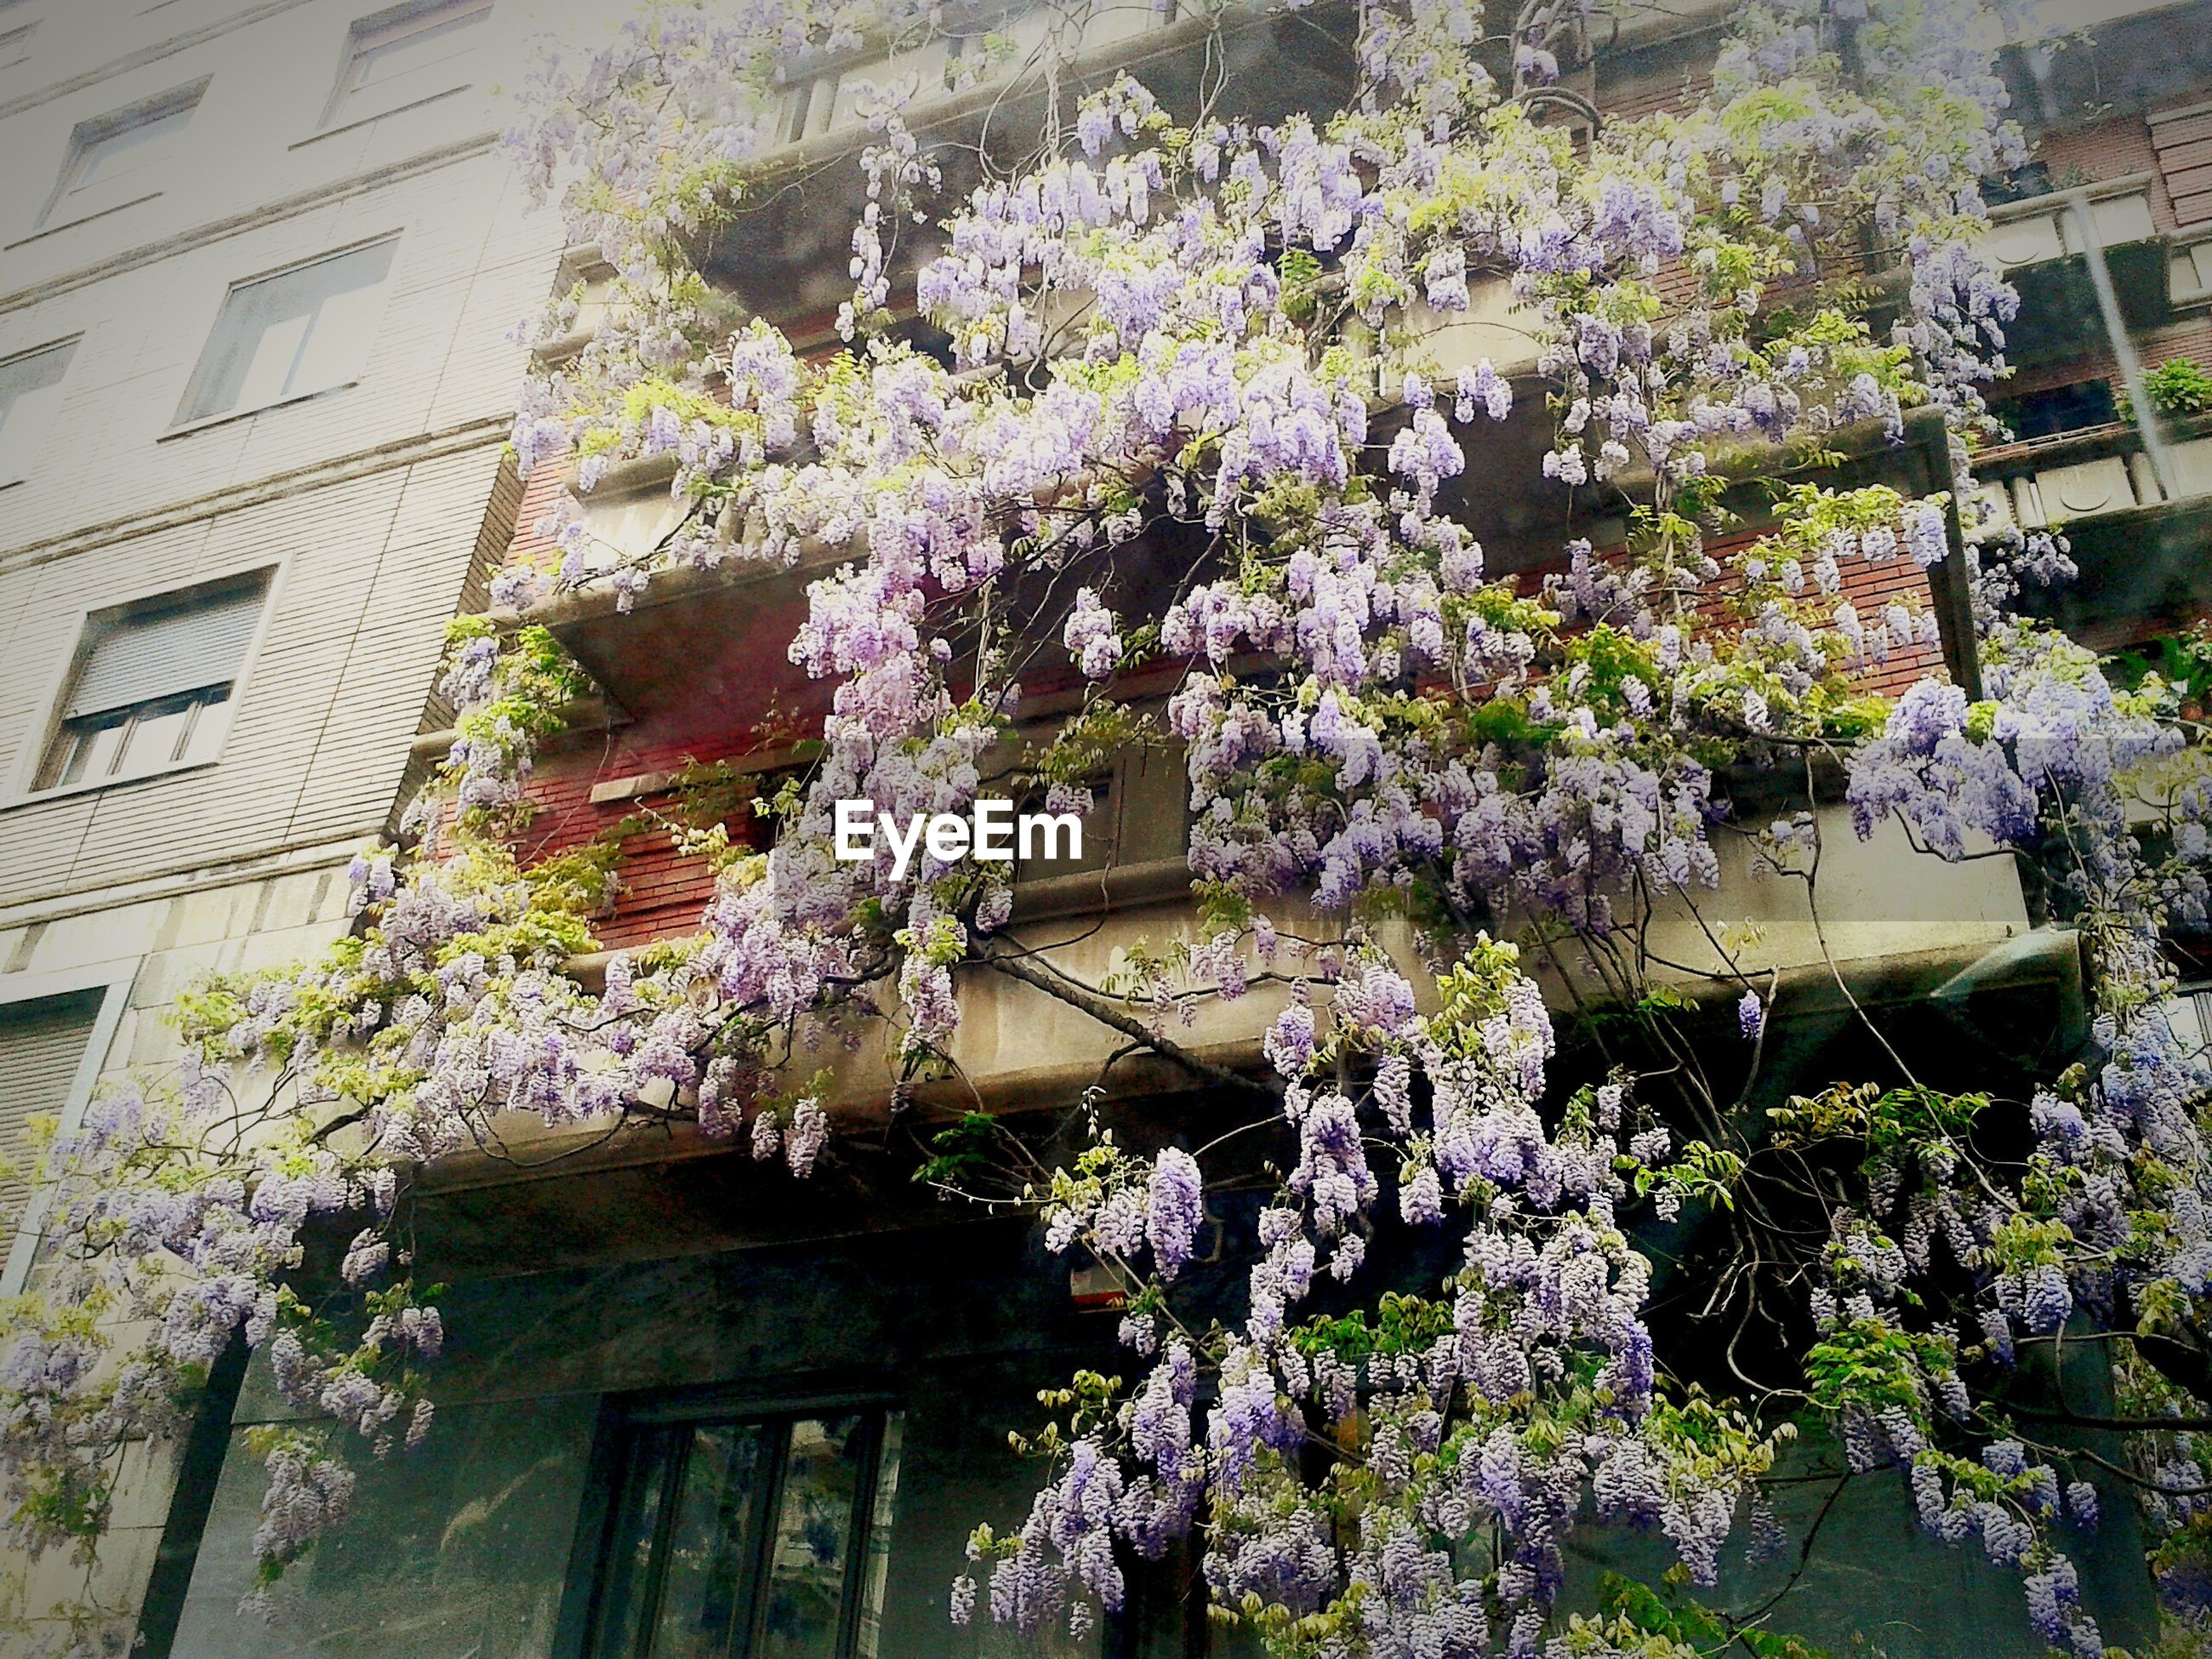 Low angle view of flowers on plant outside building